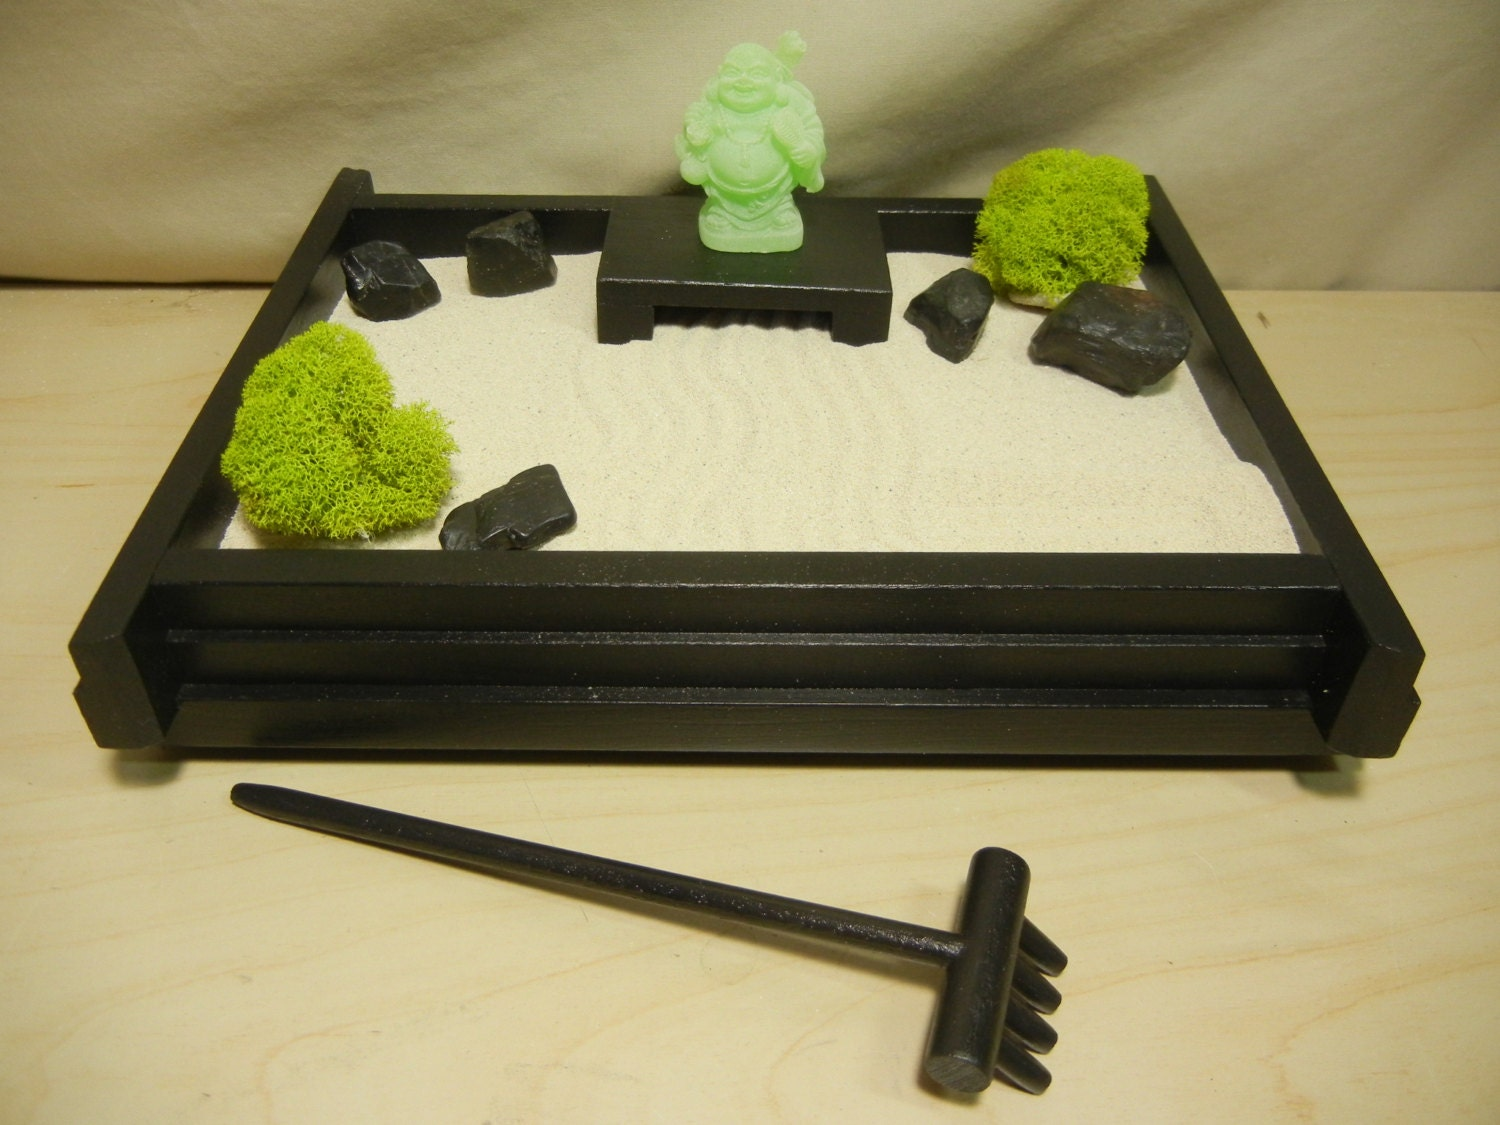 S 03fb small desk or table top zen garden with frosted jade for Table zen garden